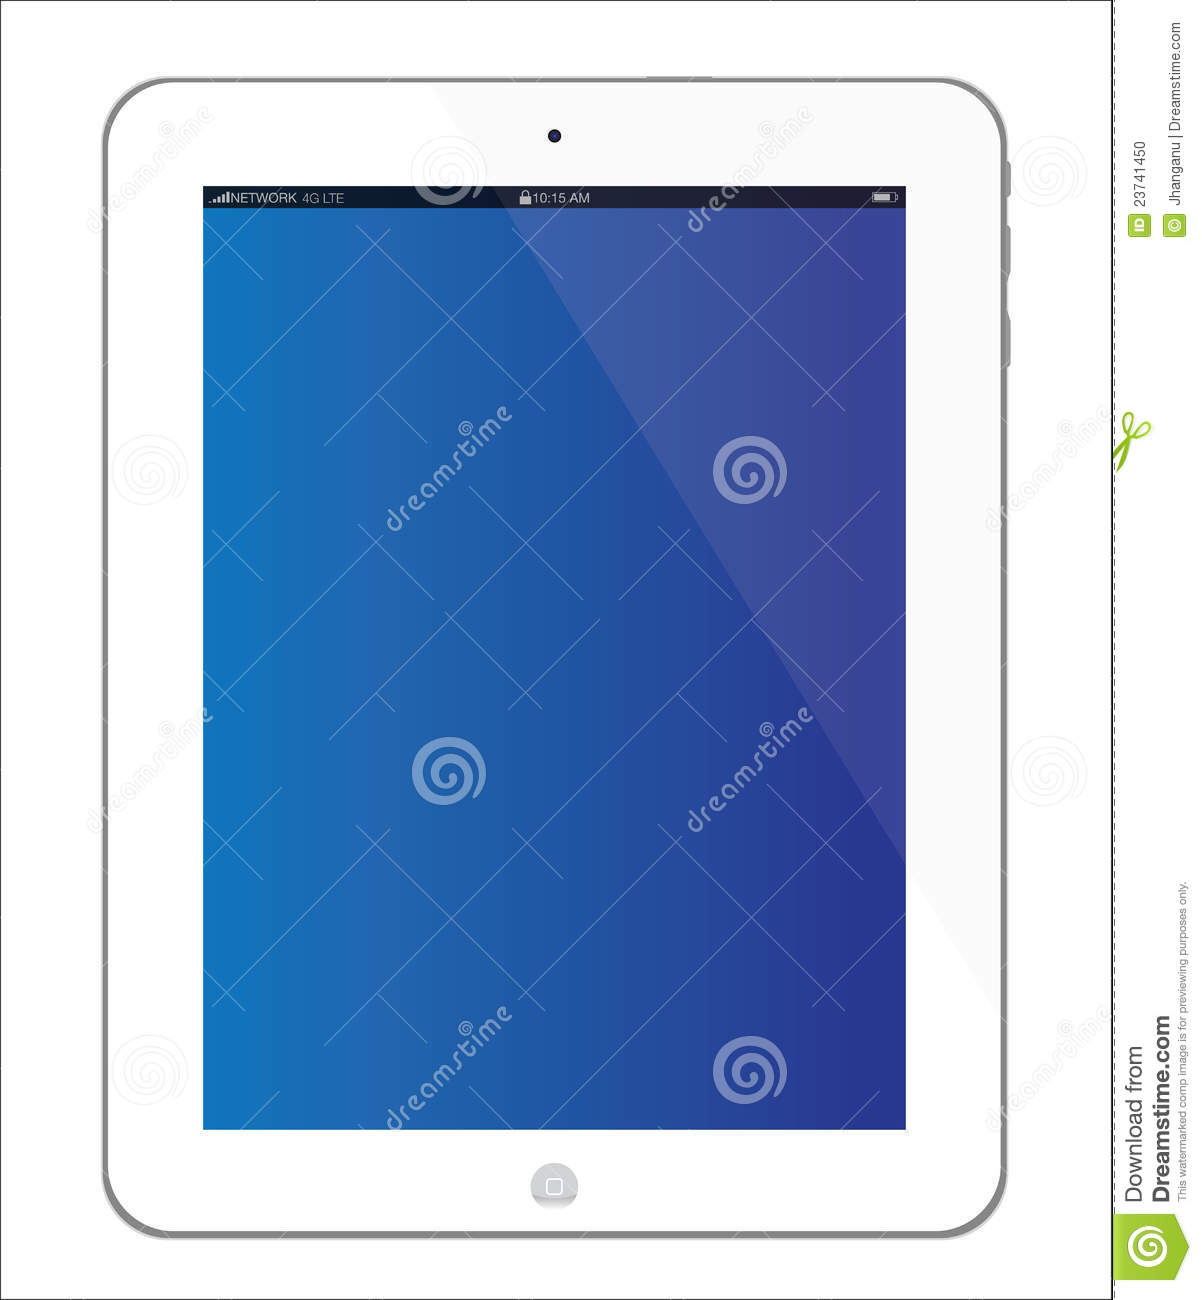 Apple: iPad Is the Only Tablet That Will Be Used